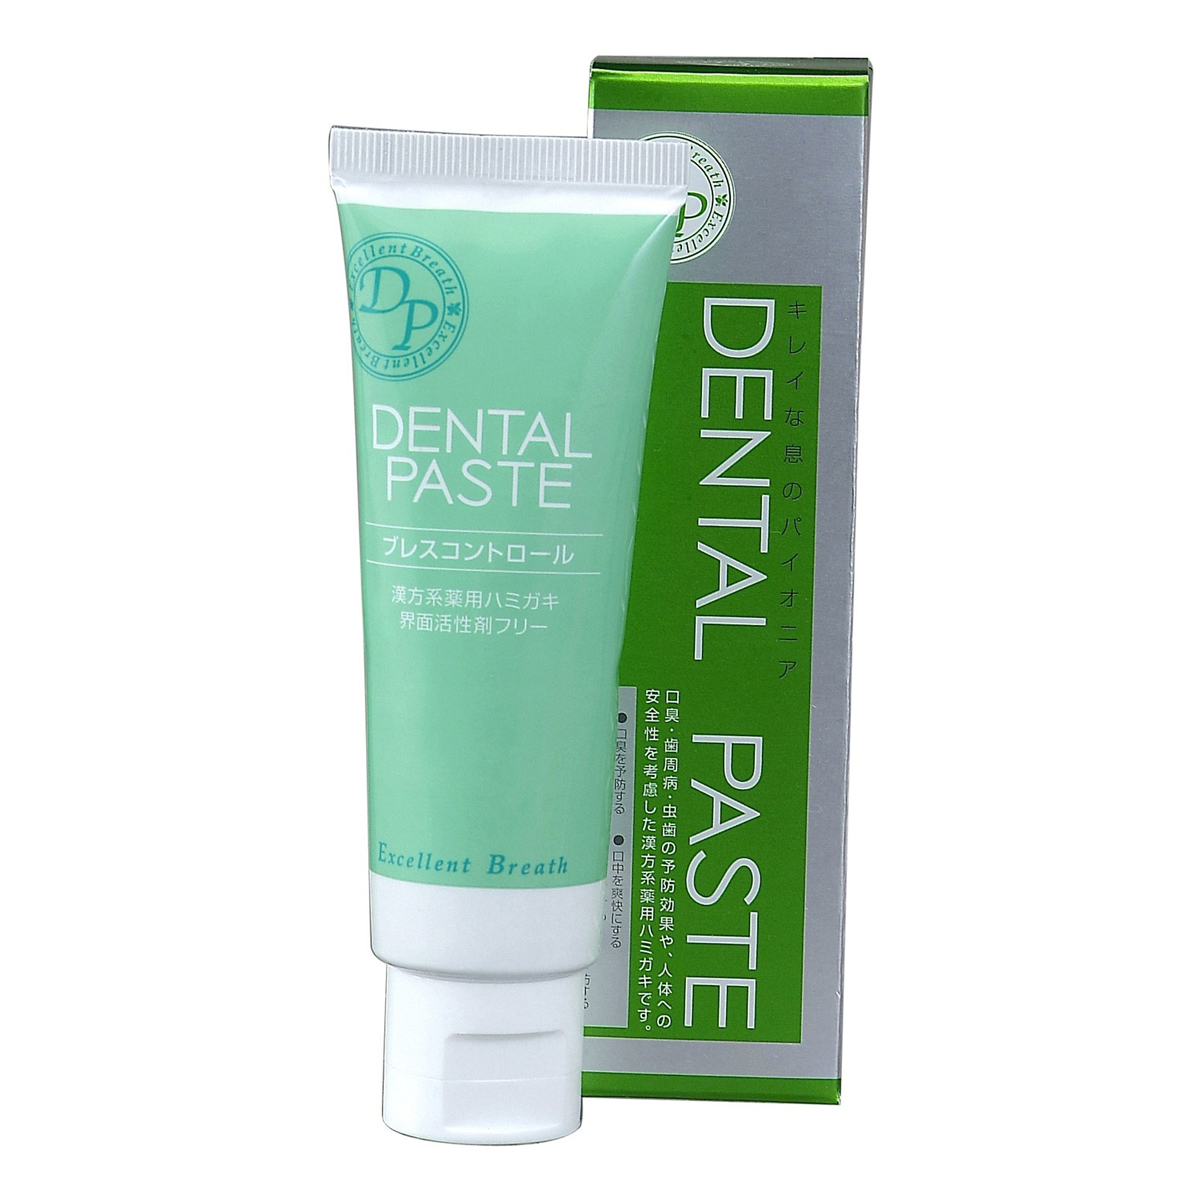 Excellent BREW breath control medicated dental paste halitosis prevent  gingivitis and periodontal disease prevention